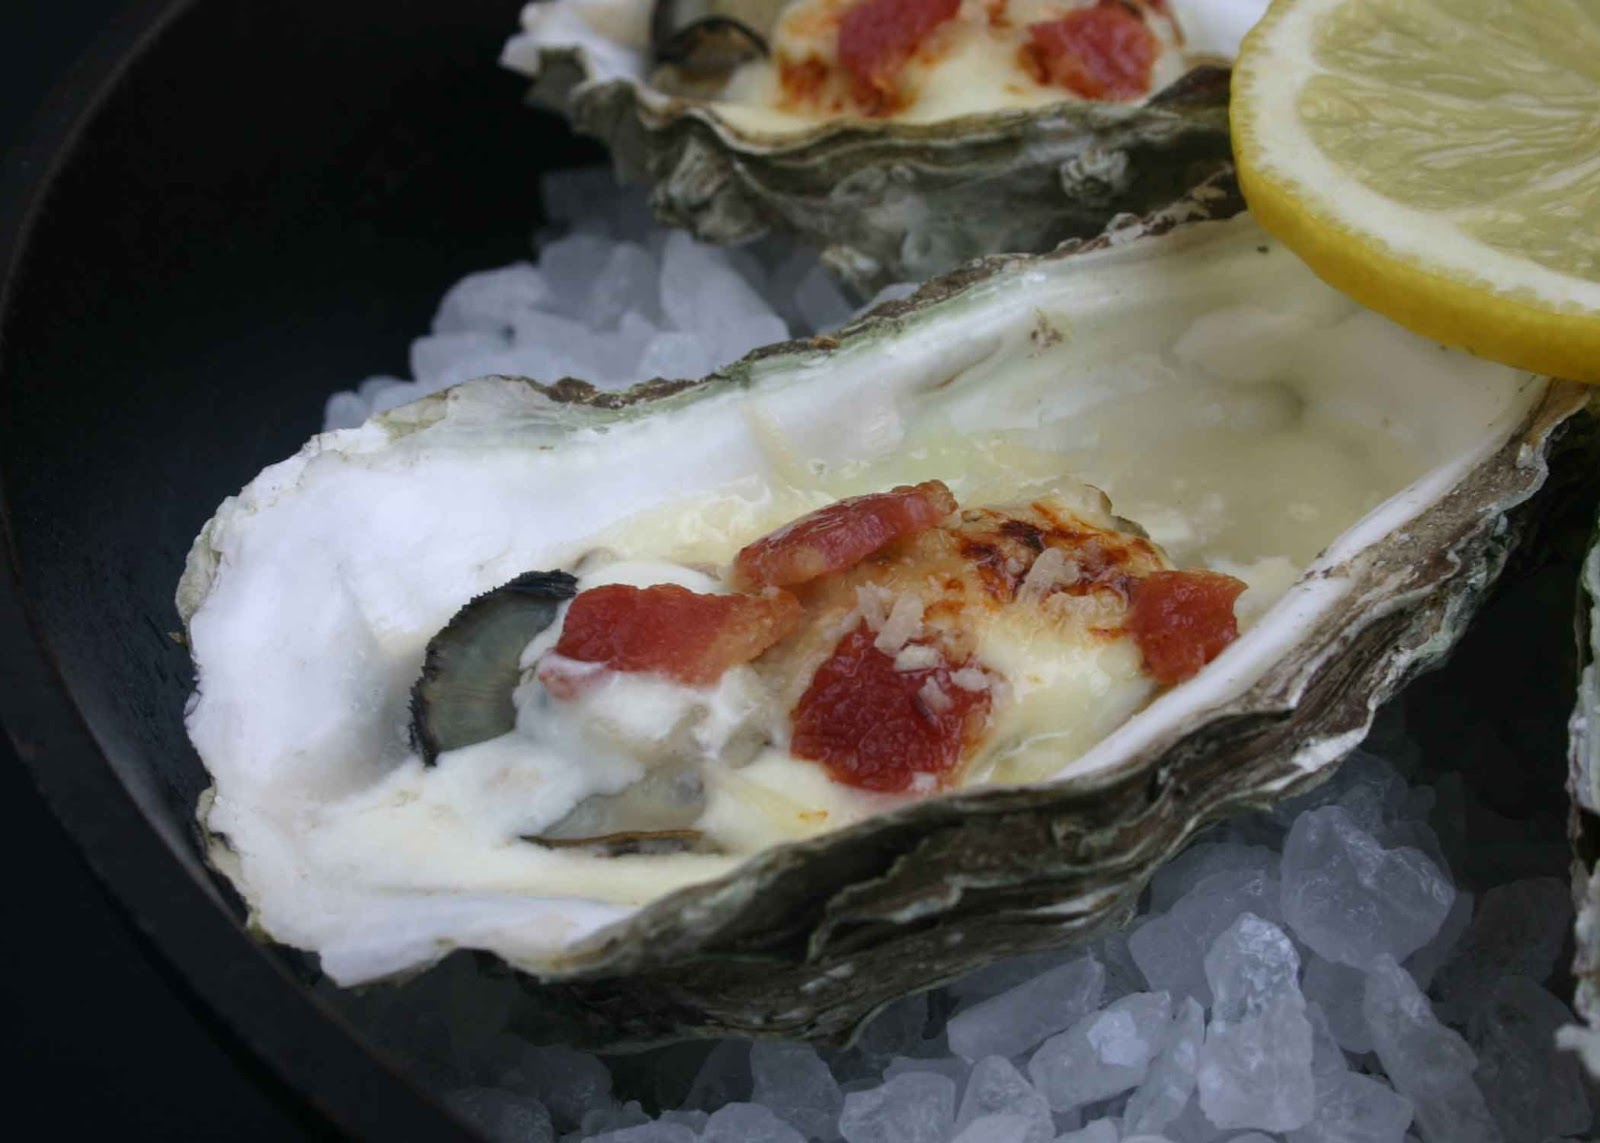 Roasted Oysters with Bacon and Parmigiano-Reggiano (Parmesan Cheese)